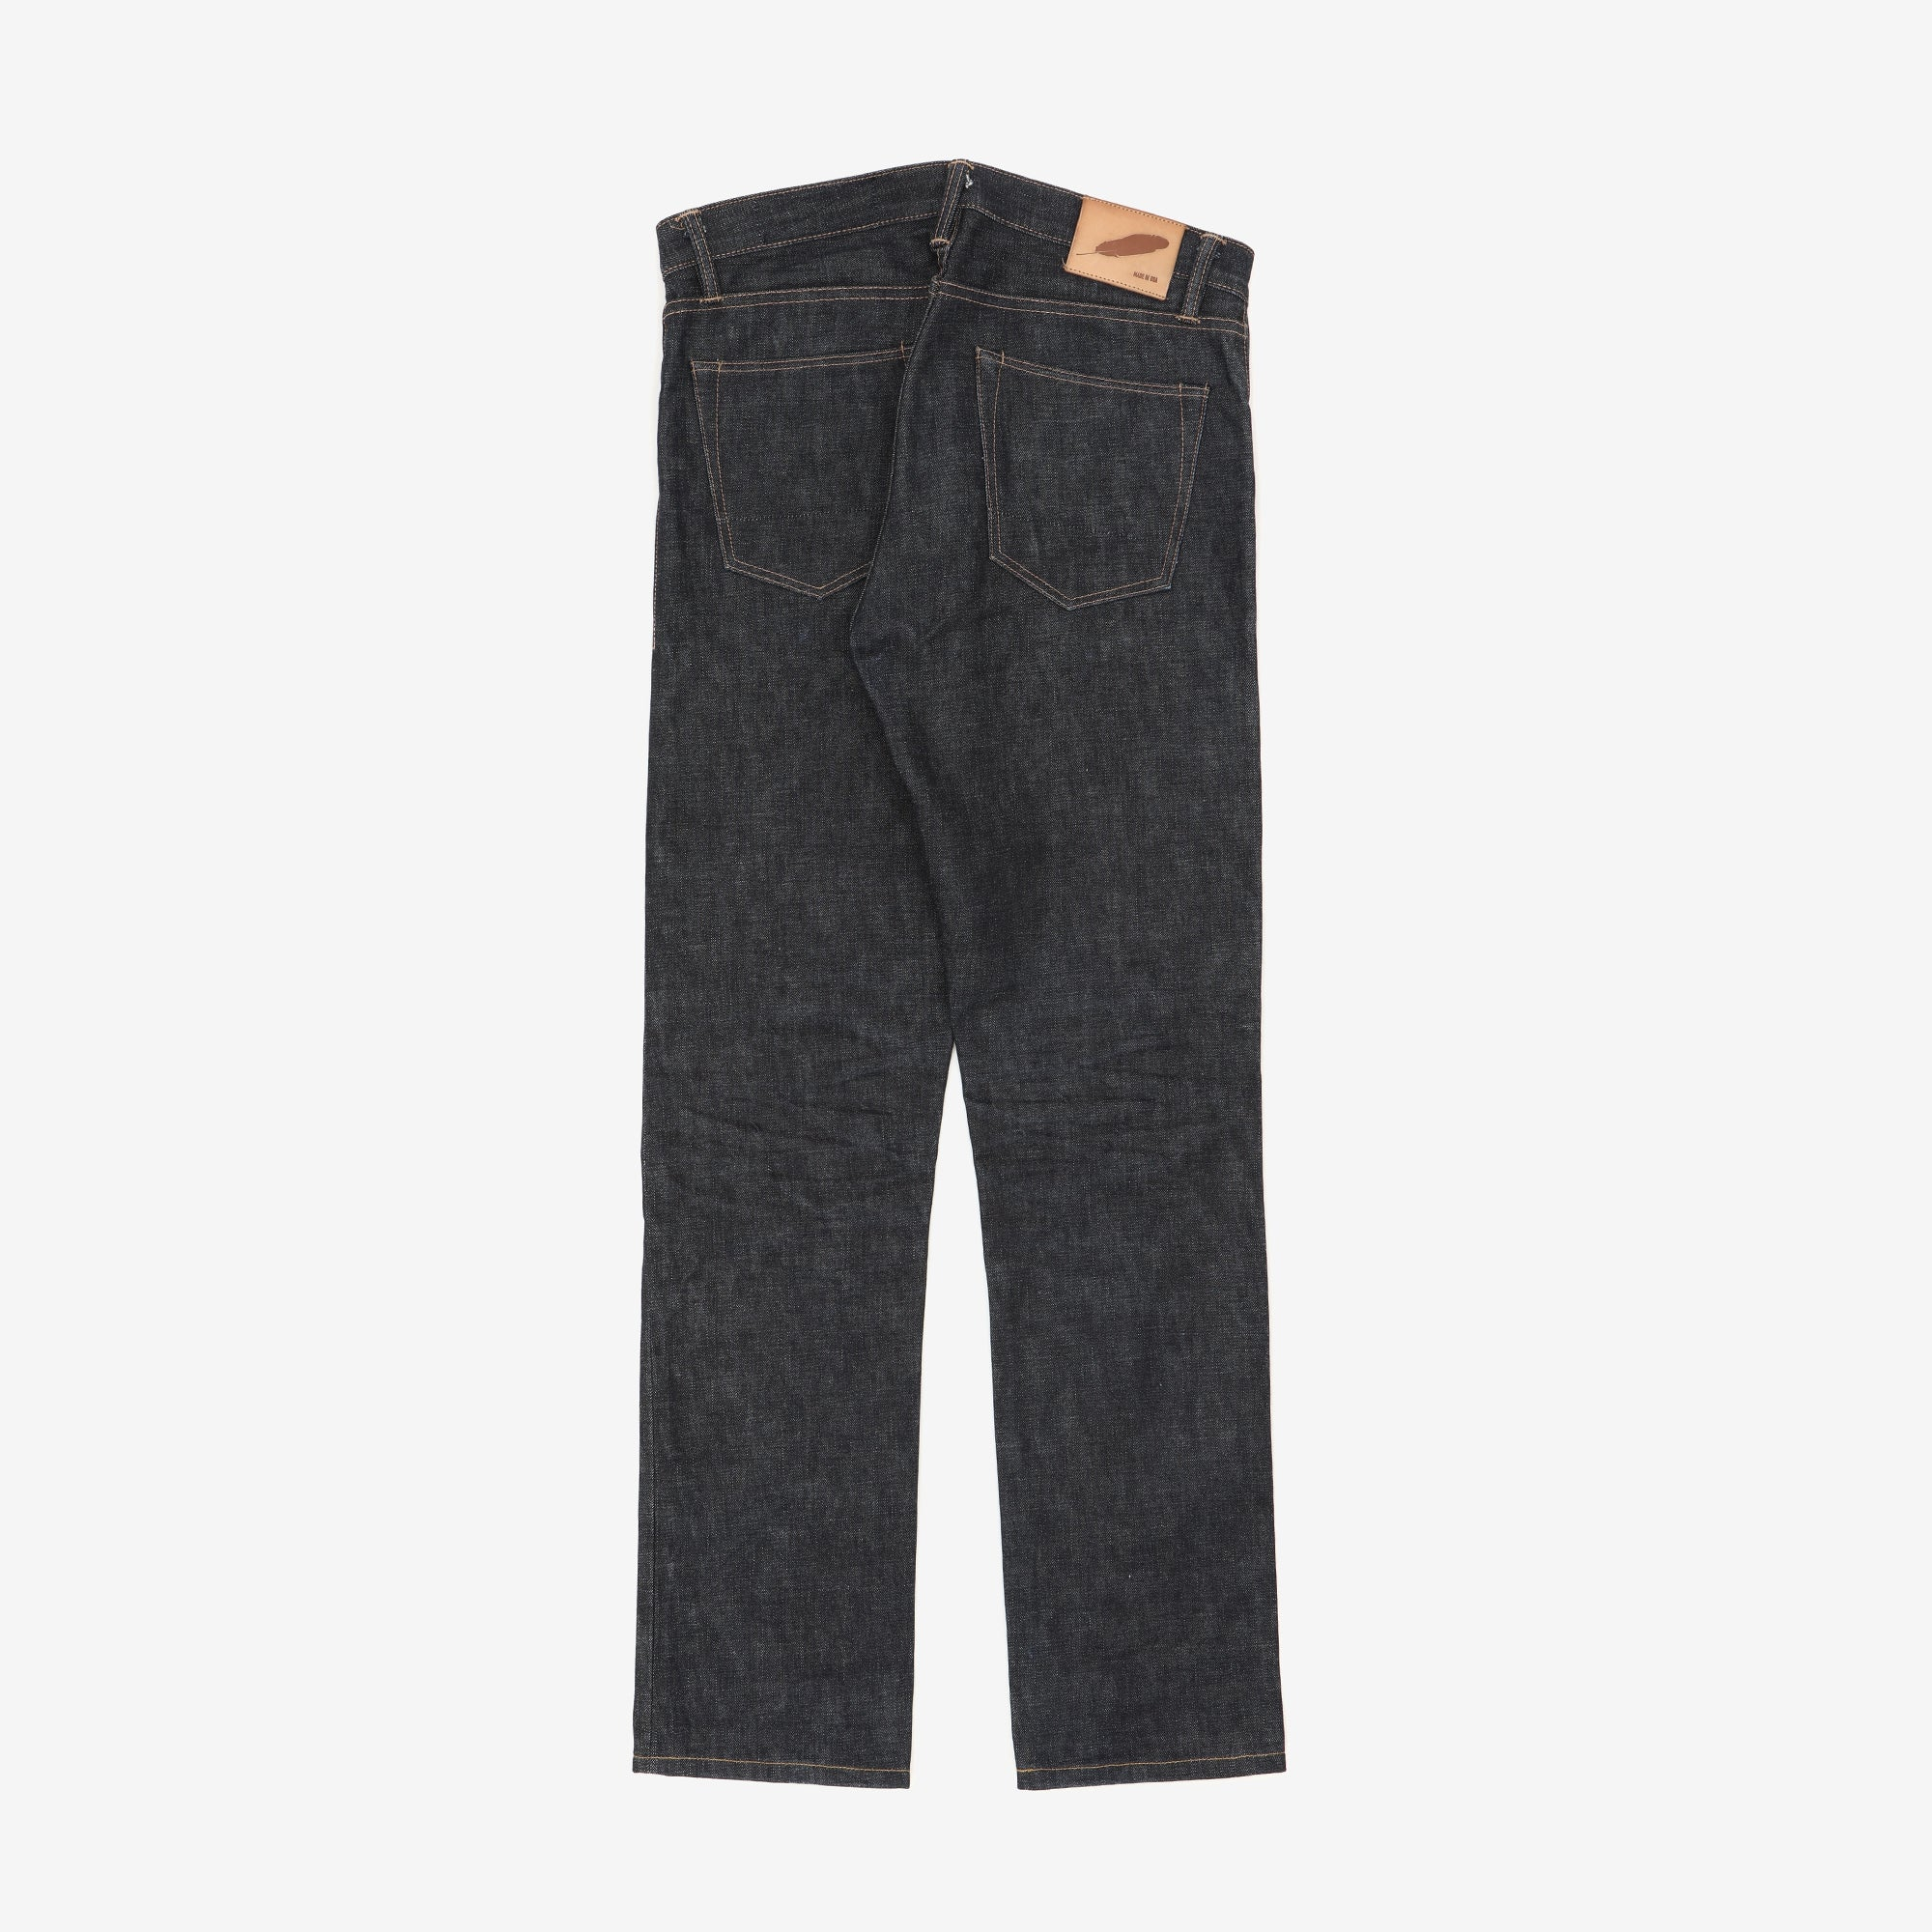 14.5 oz Strider Denim